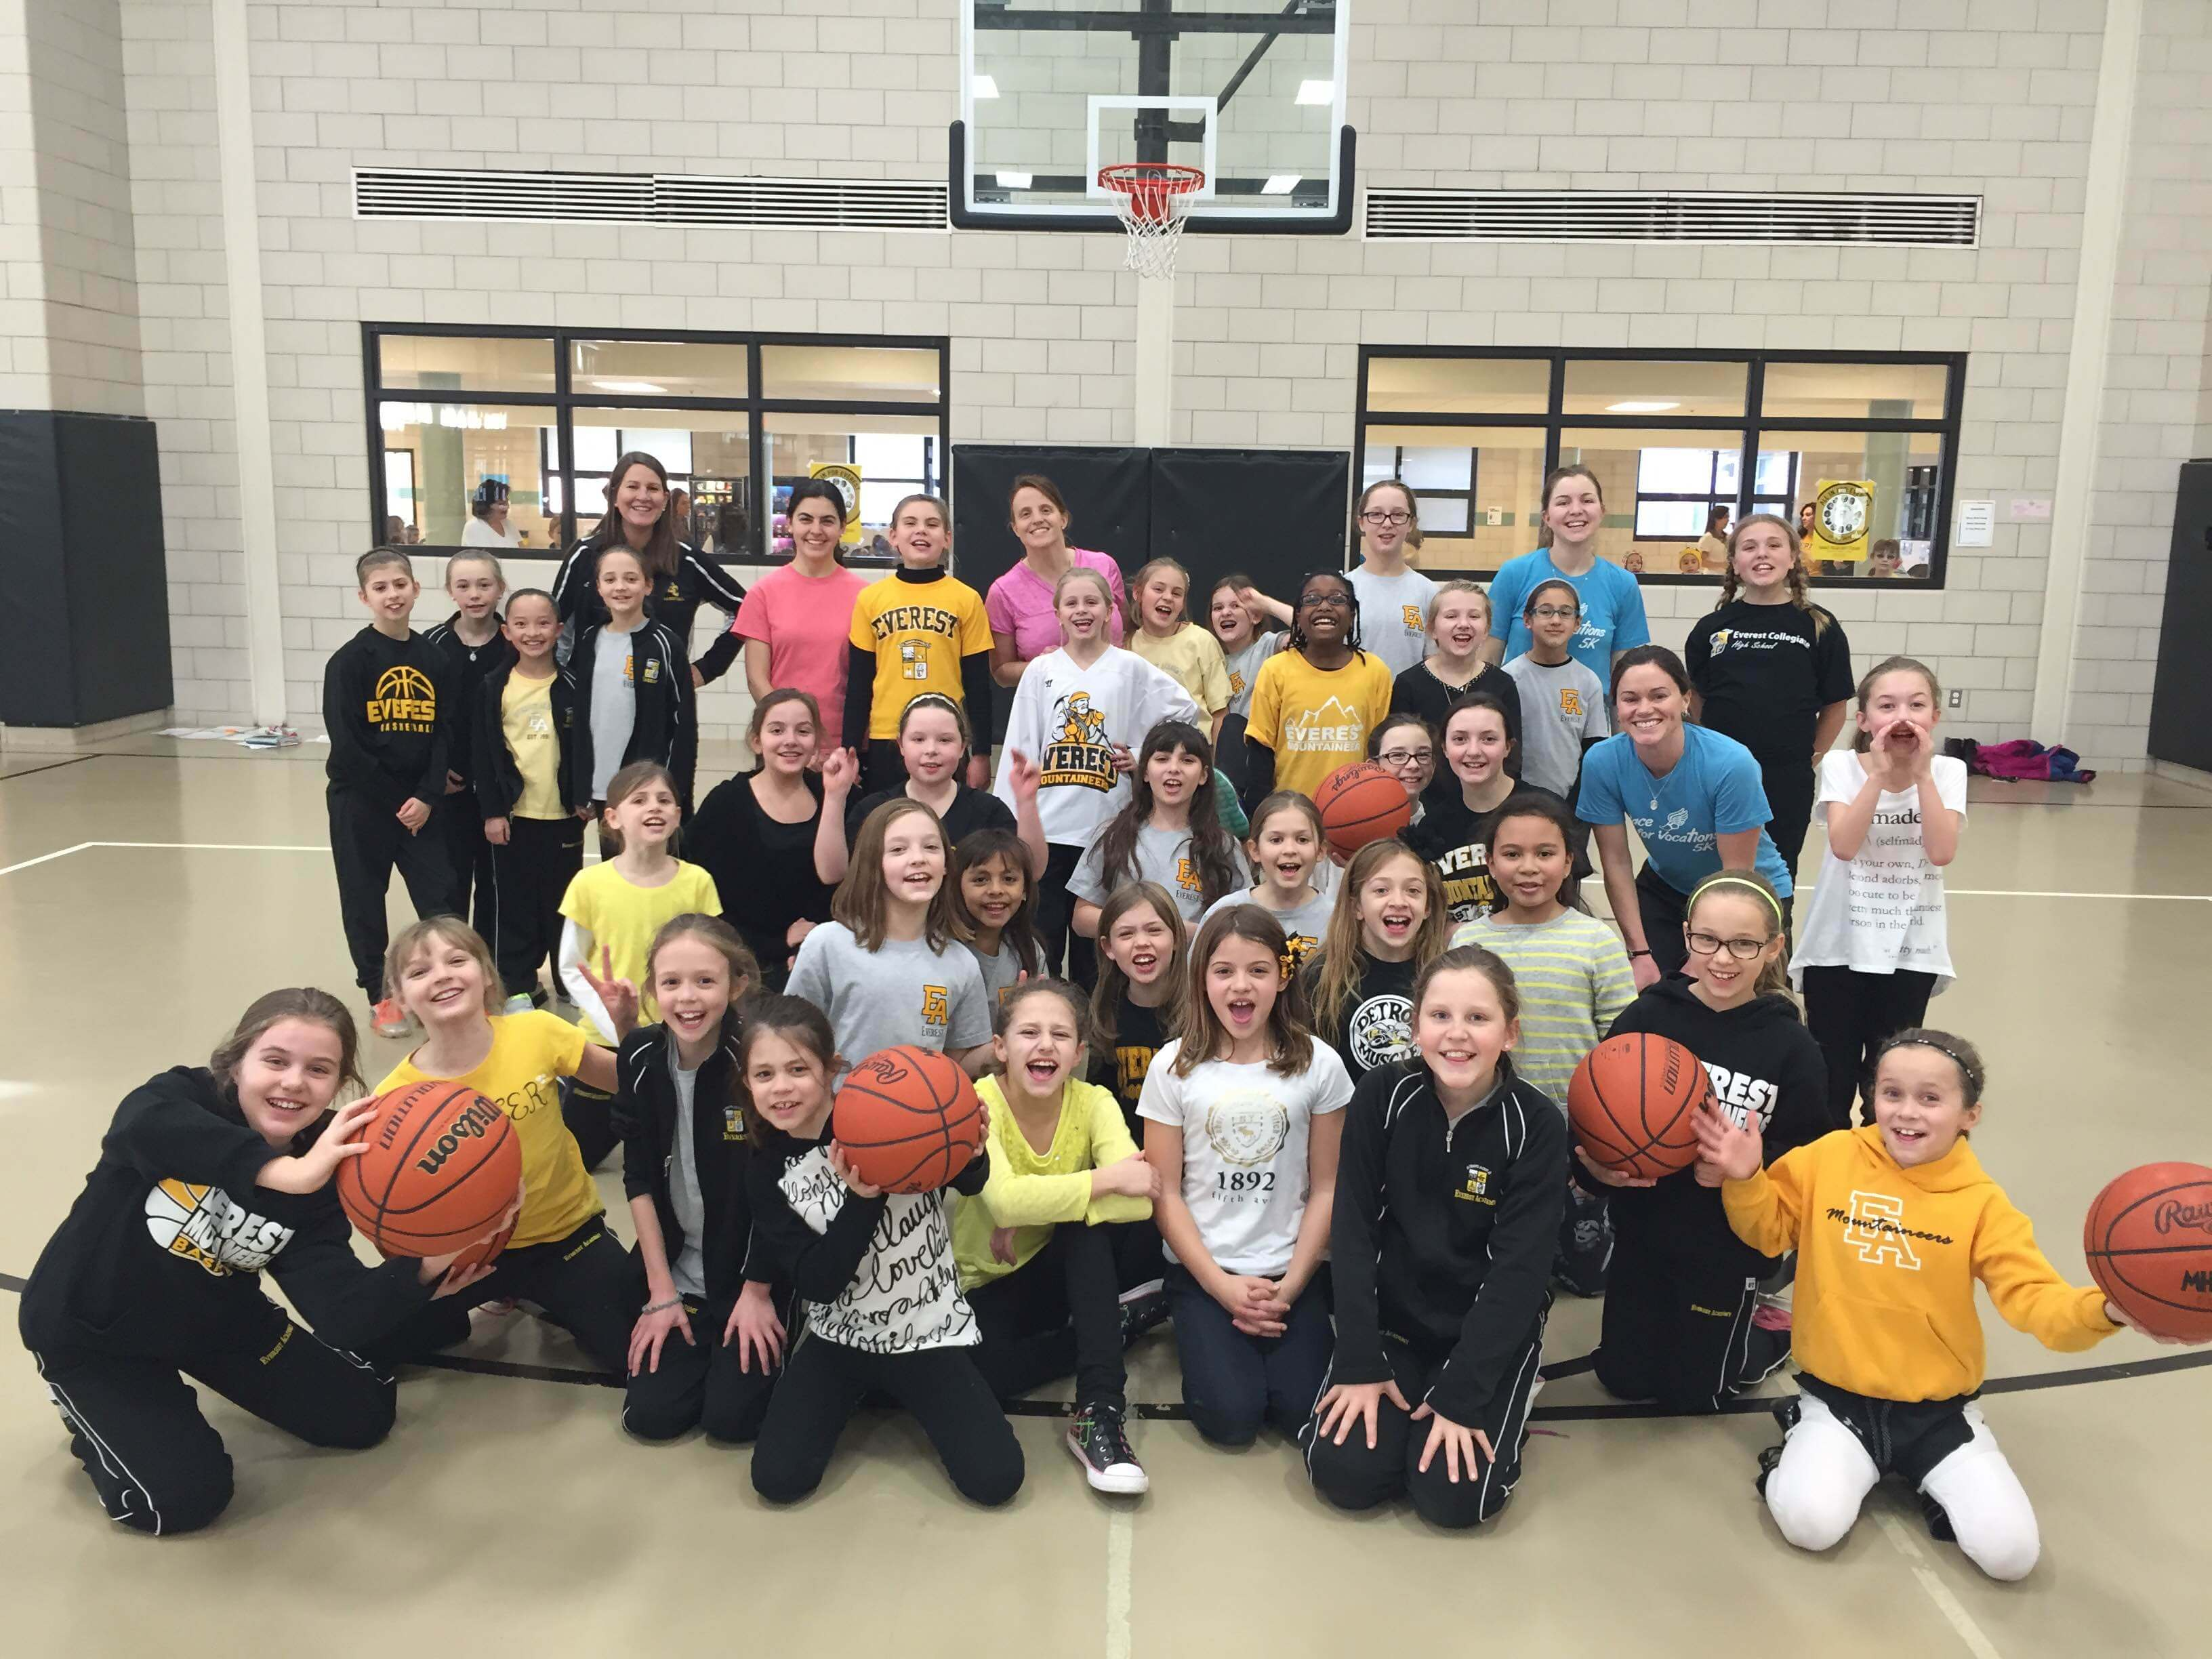 The EA girls had a great time playing basketball with the Consecrated Women as part of the week's festivities.